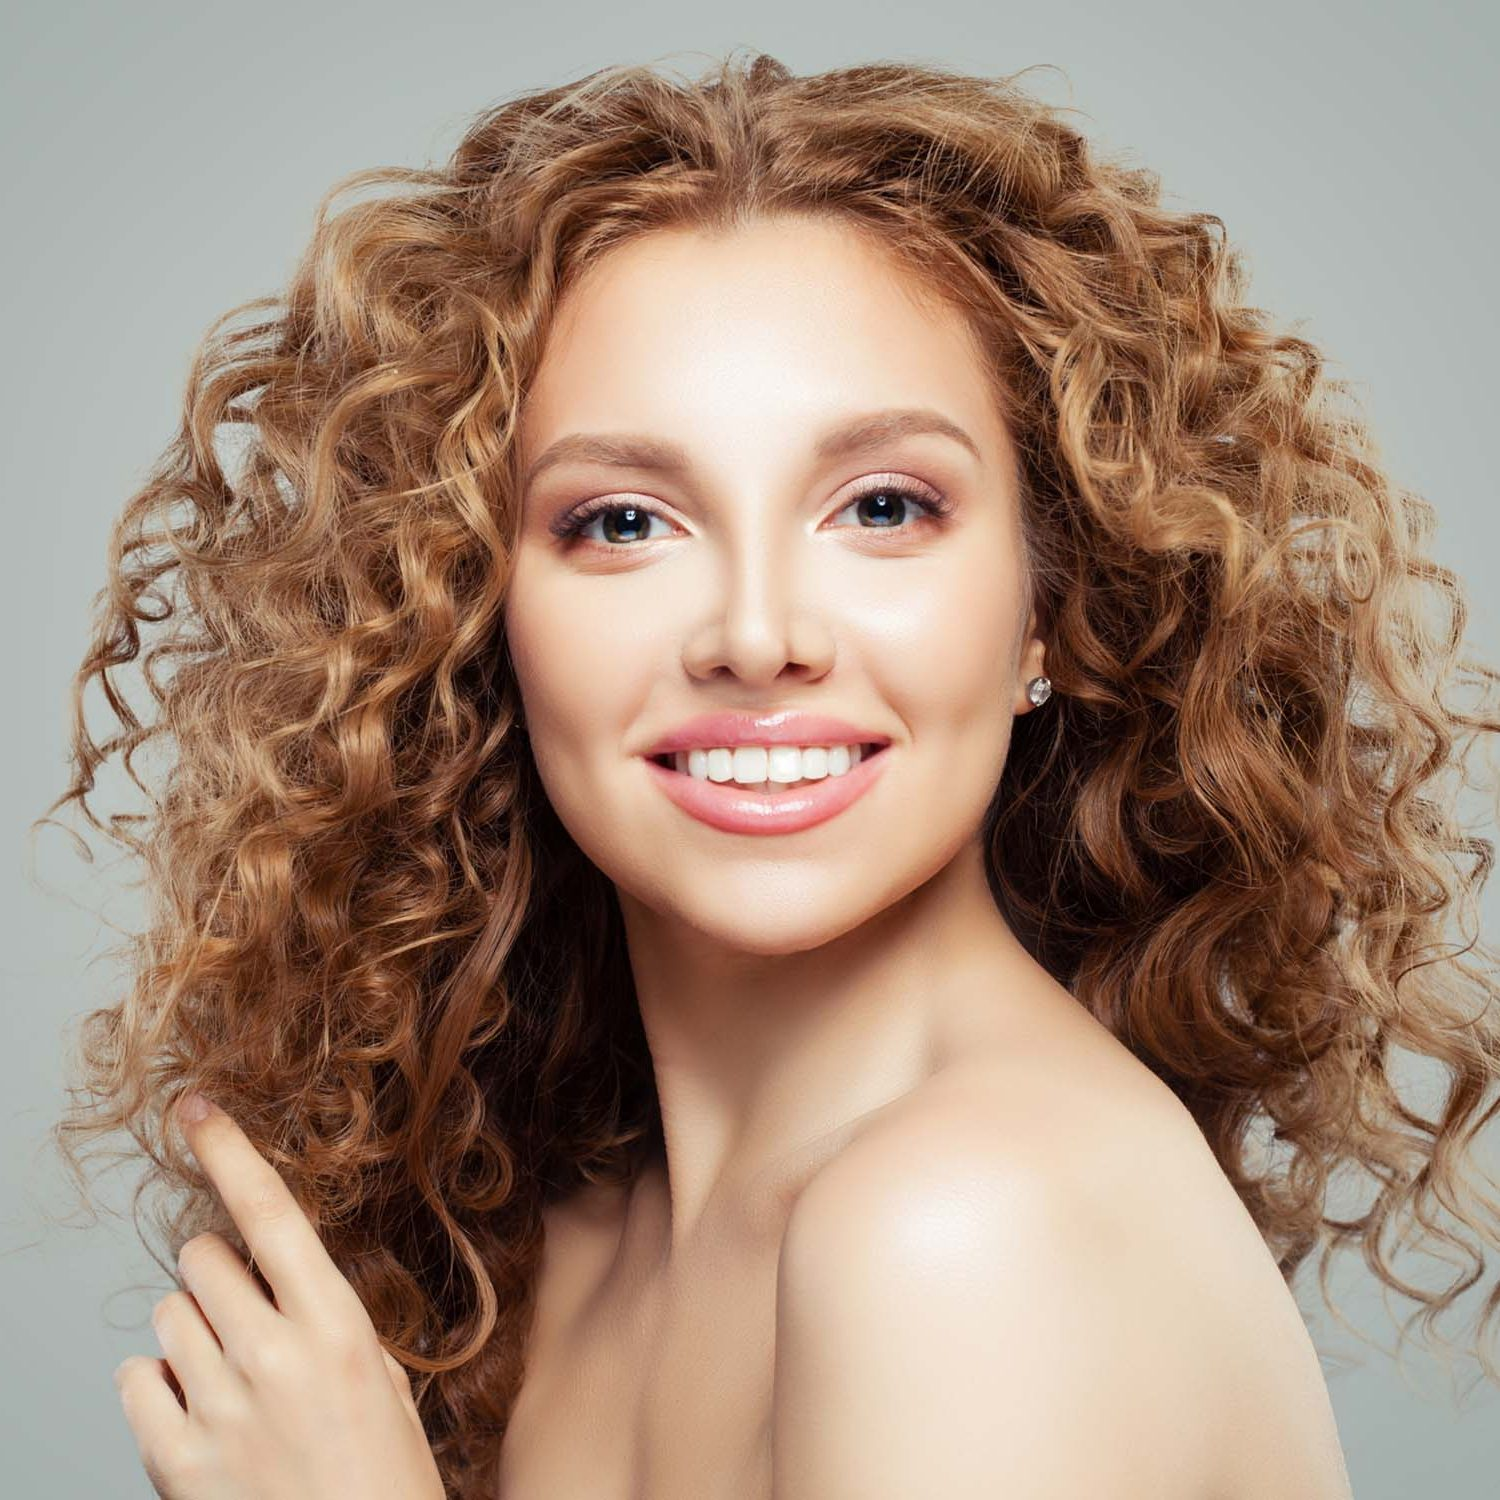 Attractive redhead girl with clear skin and long healthy curly h